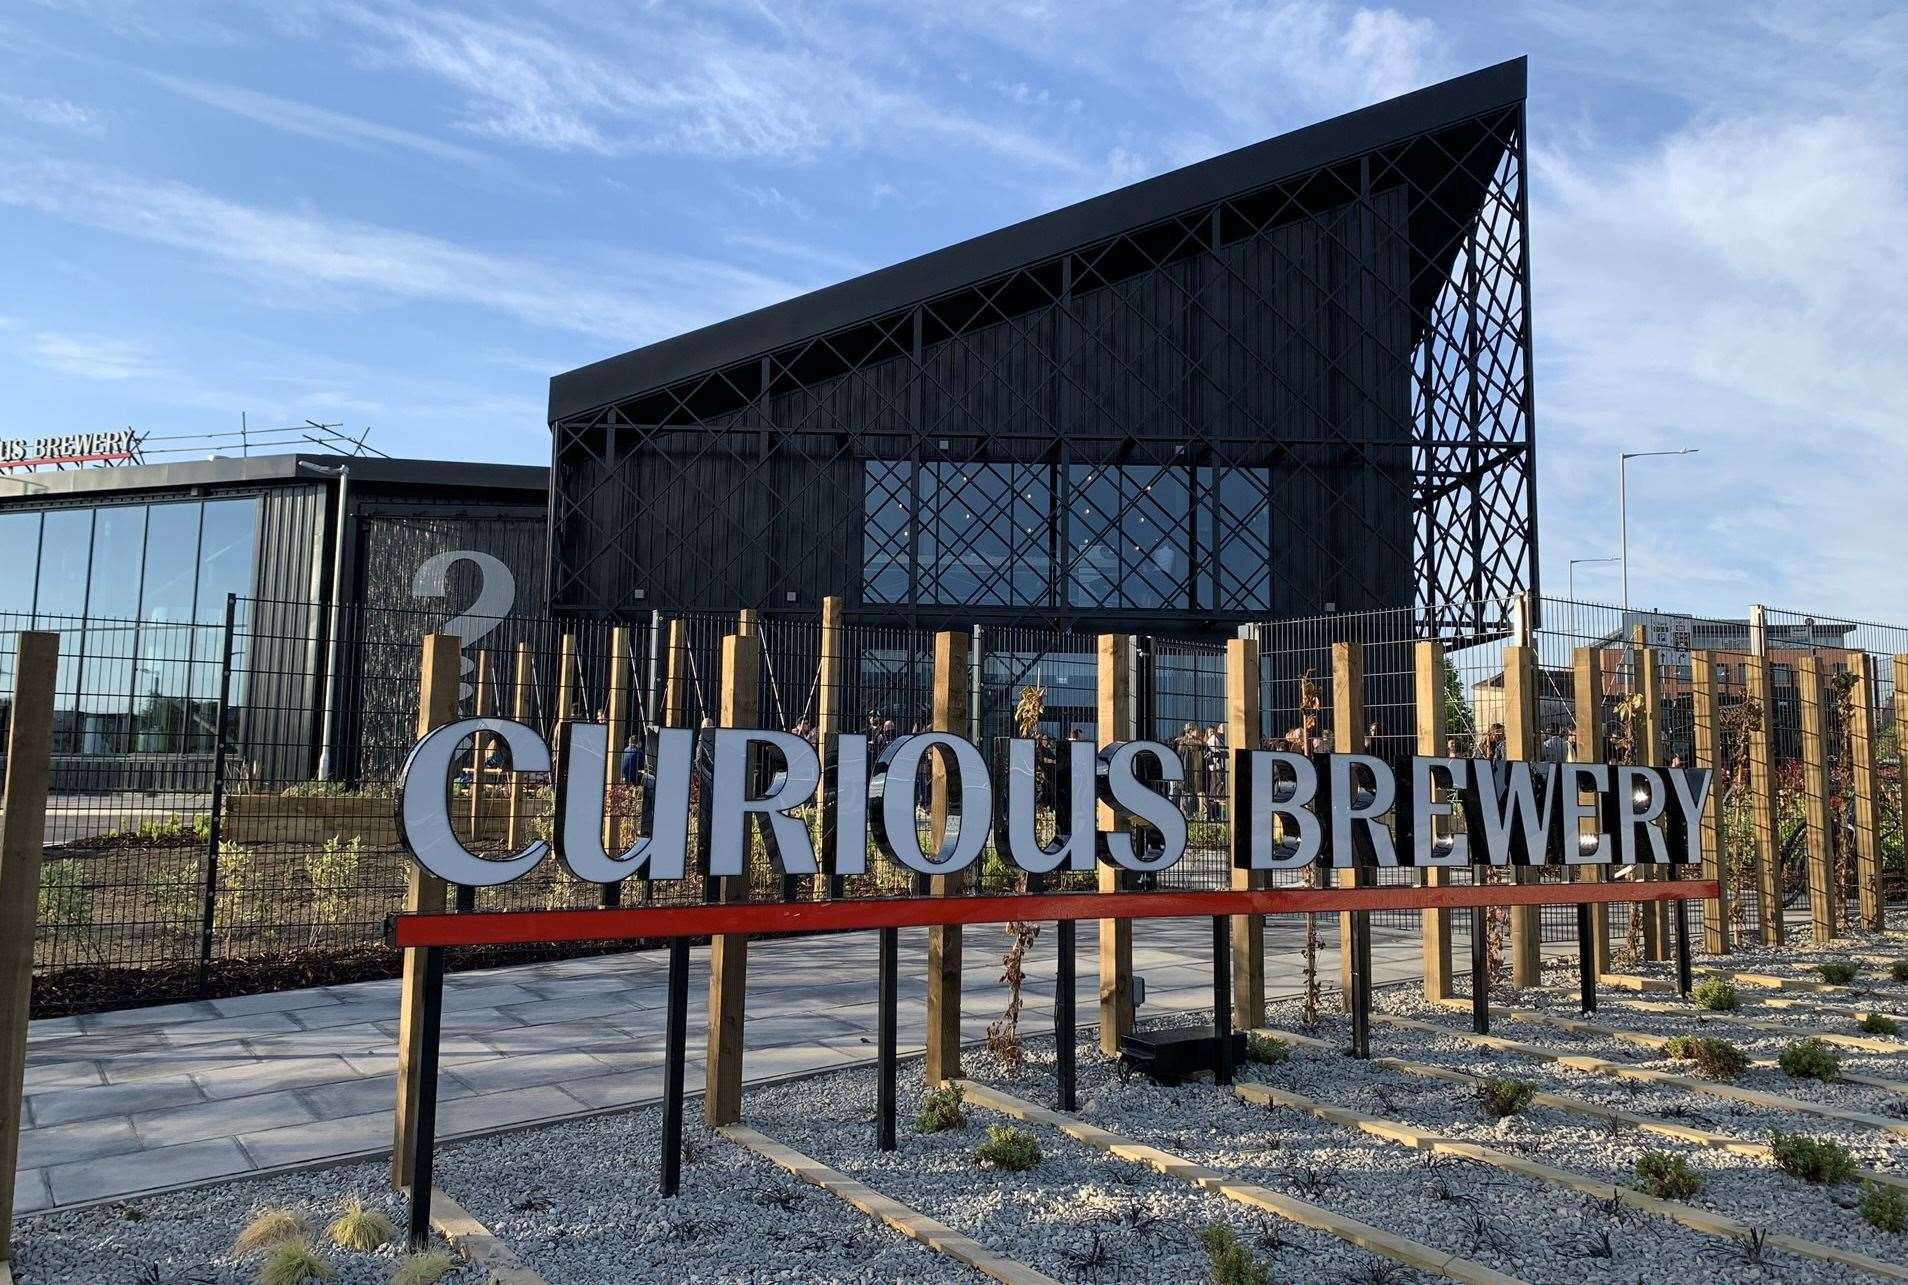 The Curious Brewery opened recently in Ashford